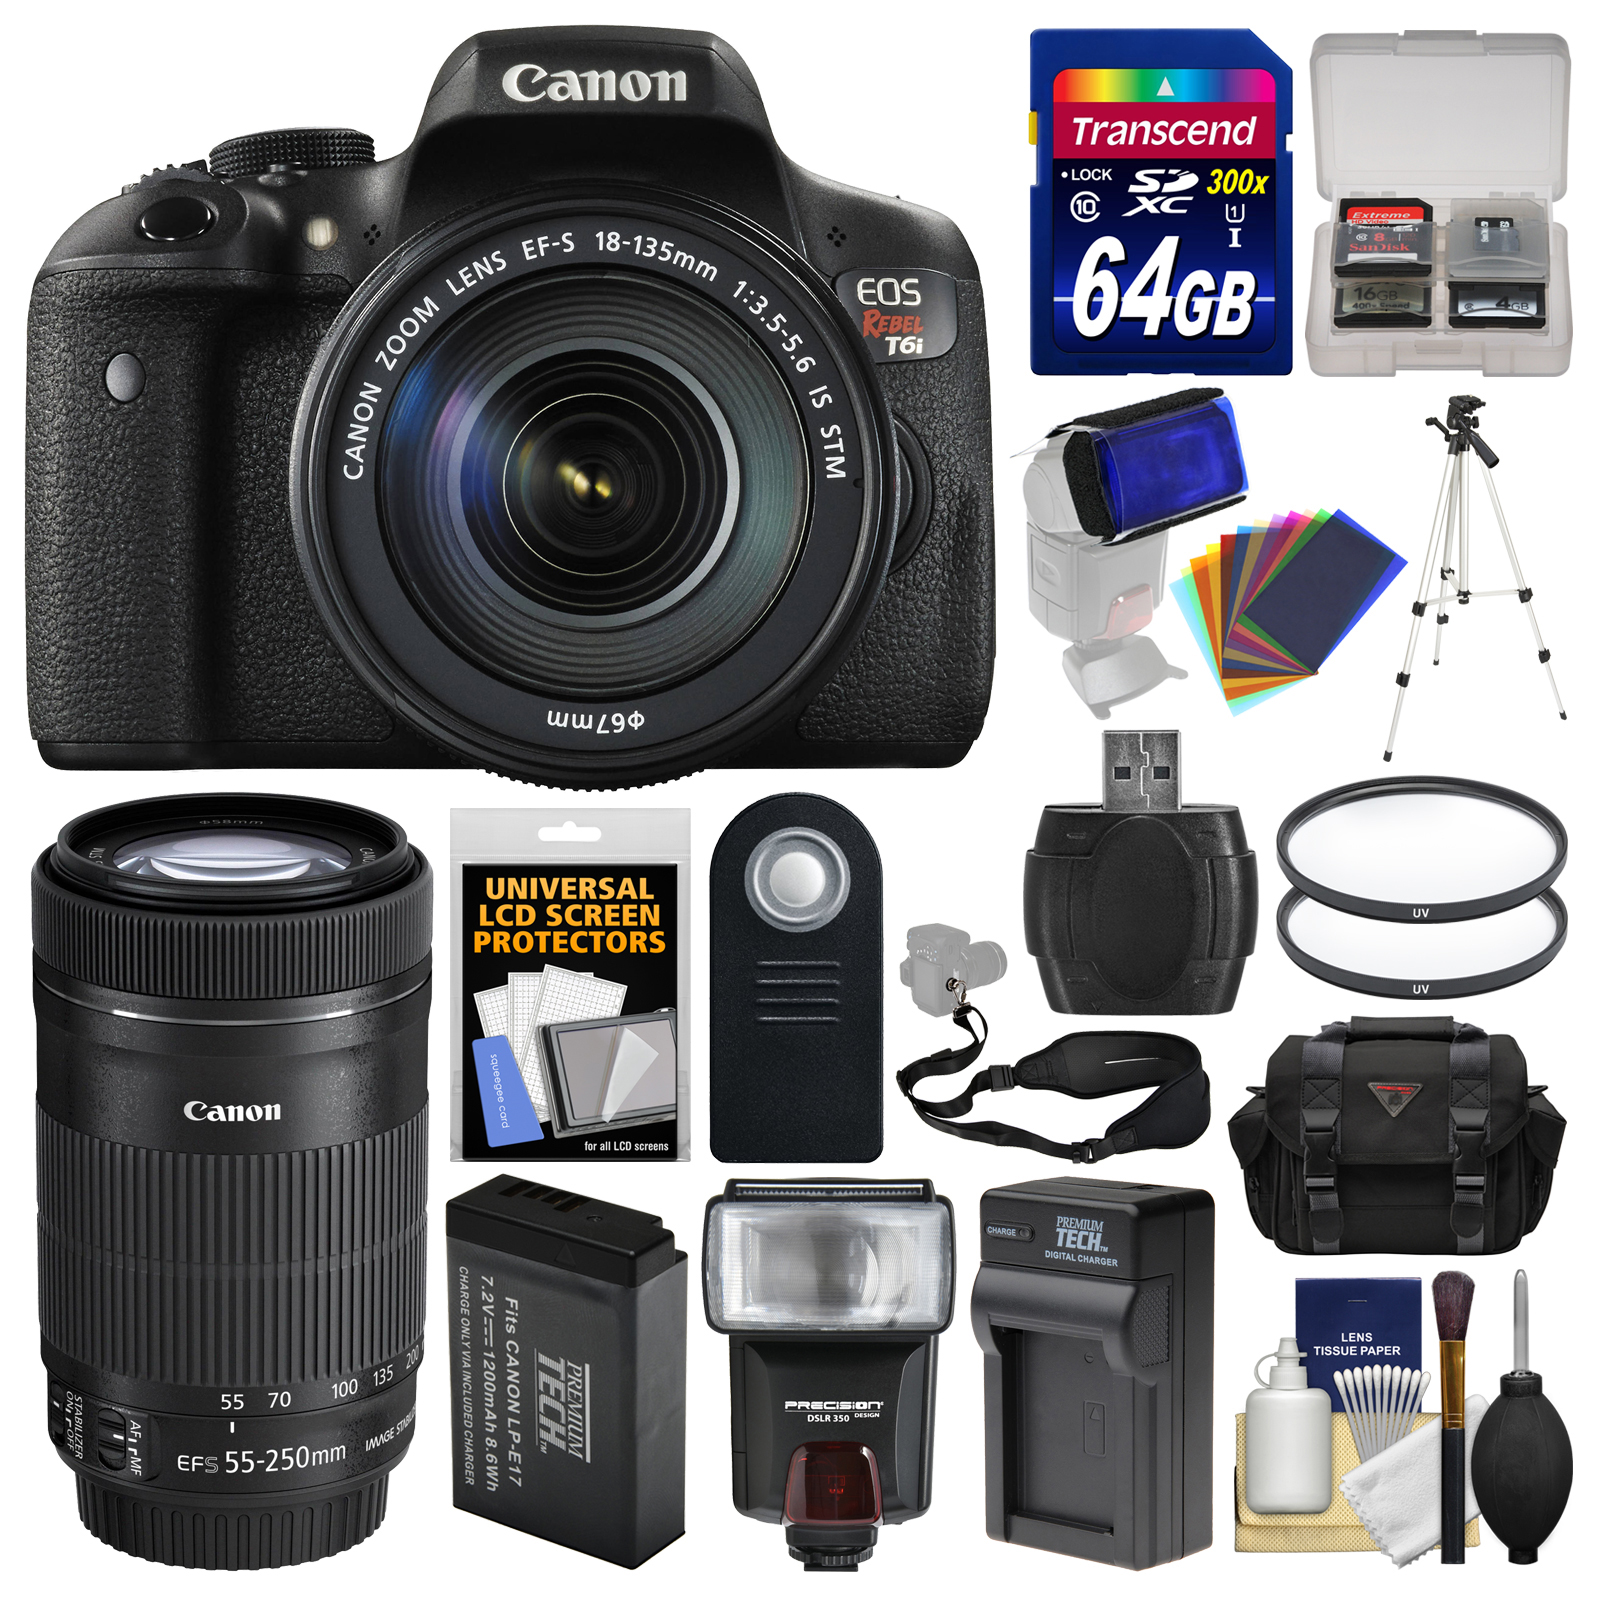 Canon EOS Rebel T6i Wi-Fi Digital SLR Camera & 18-135mm & 55-250